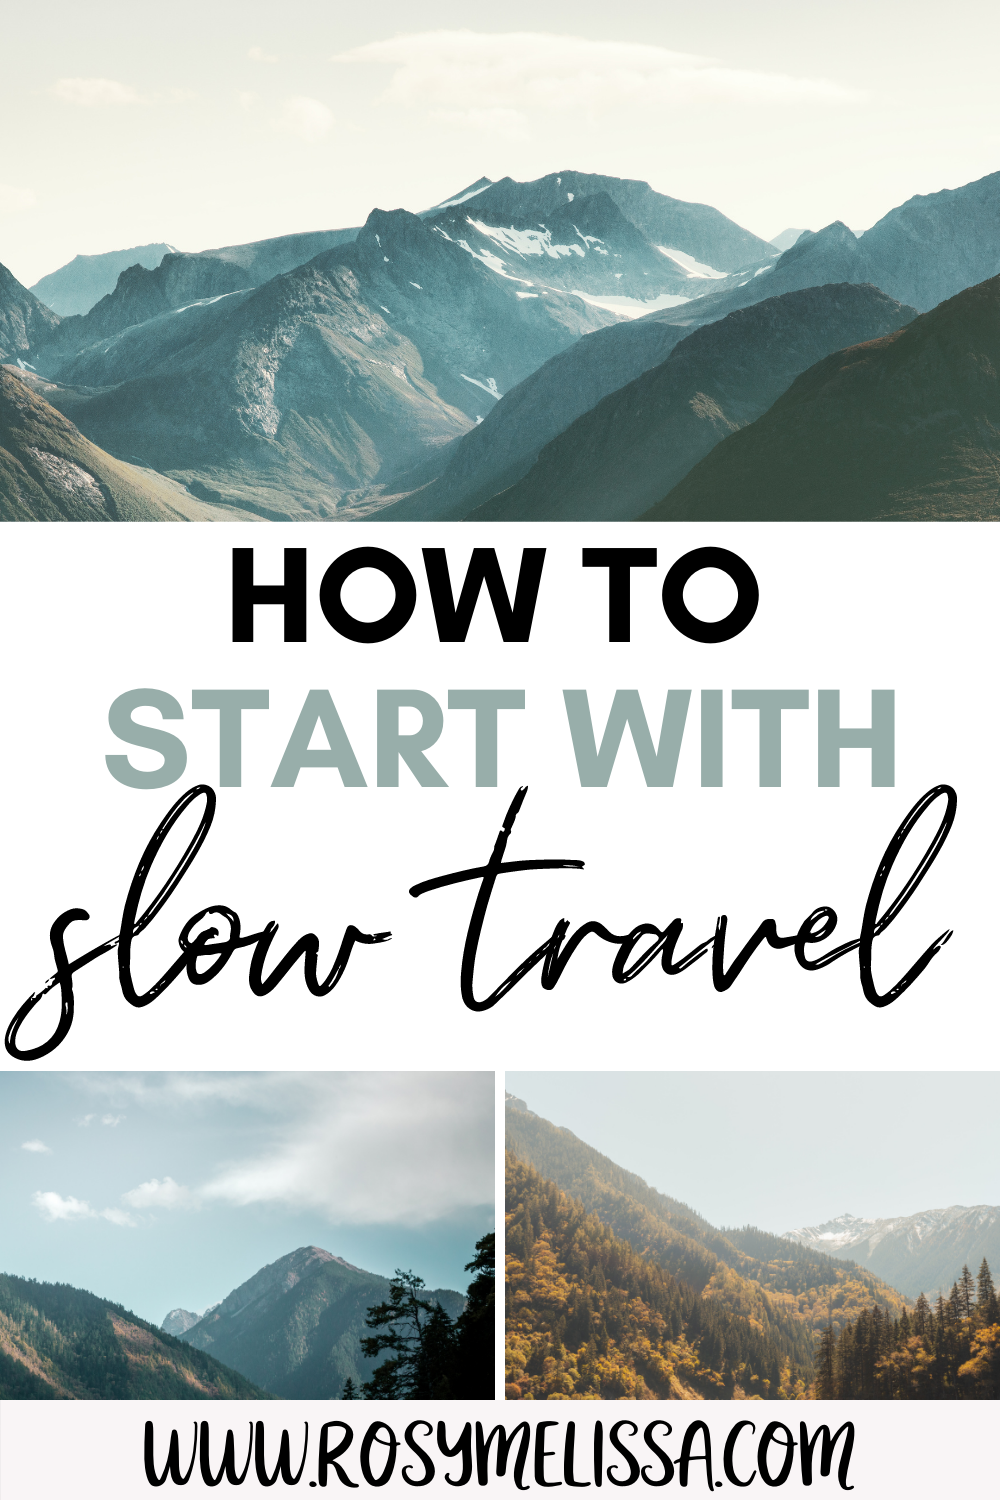 advice and tips on how to start with slow travelling, slow travel tips